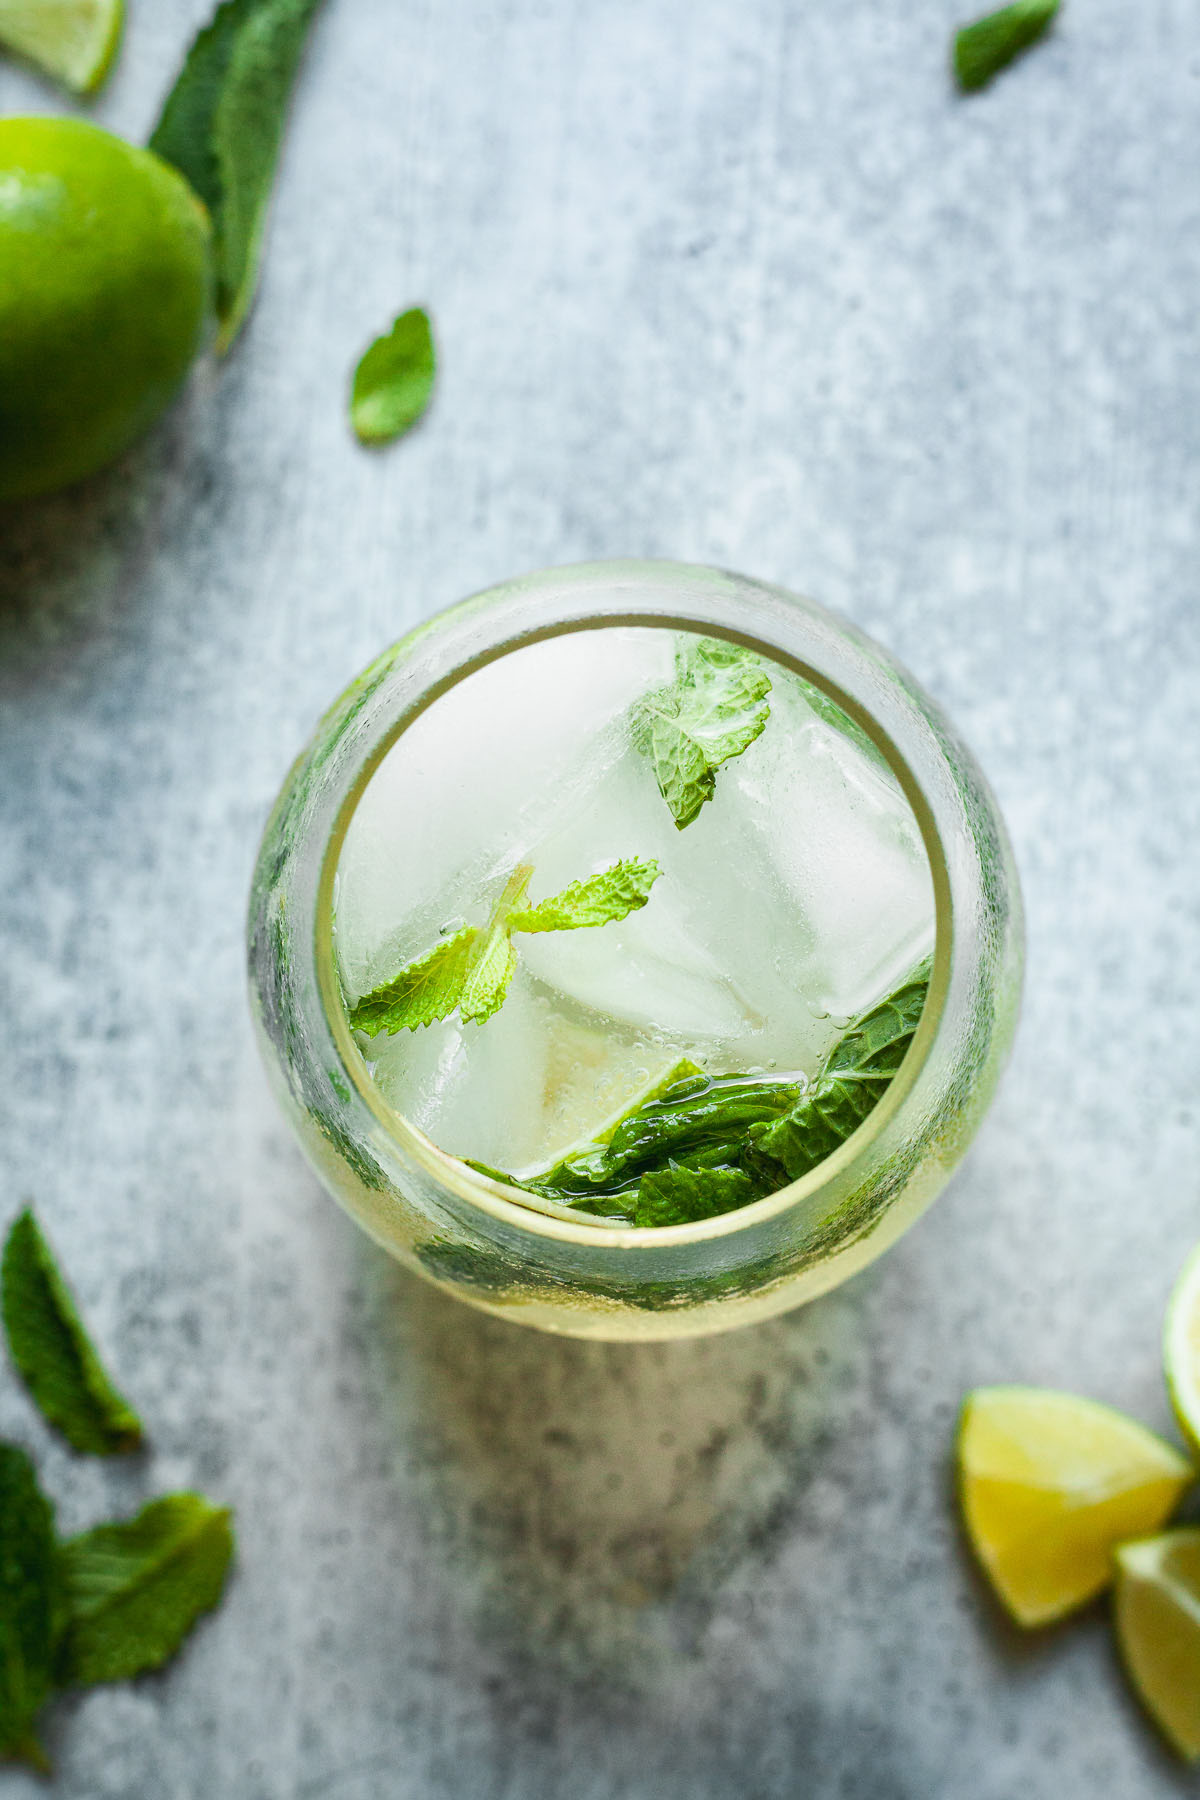 image of mojito mocktail from top of glass showing ice cubes mint and lime wedges